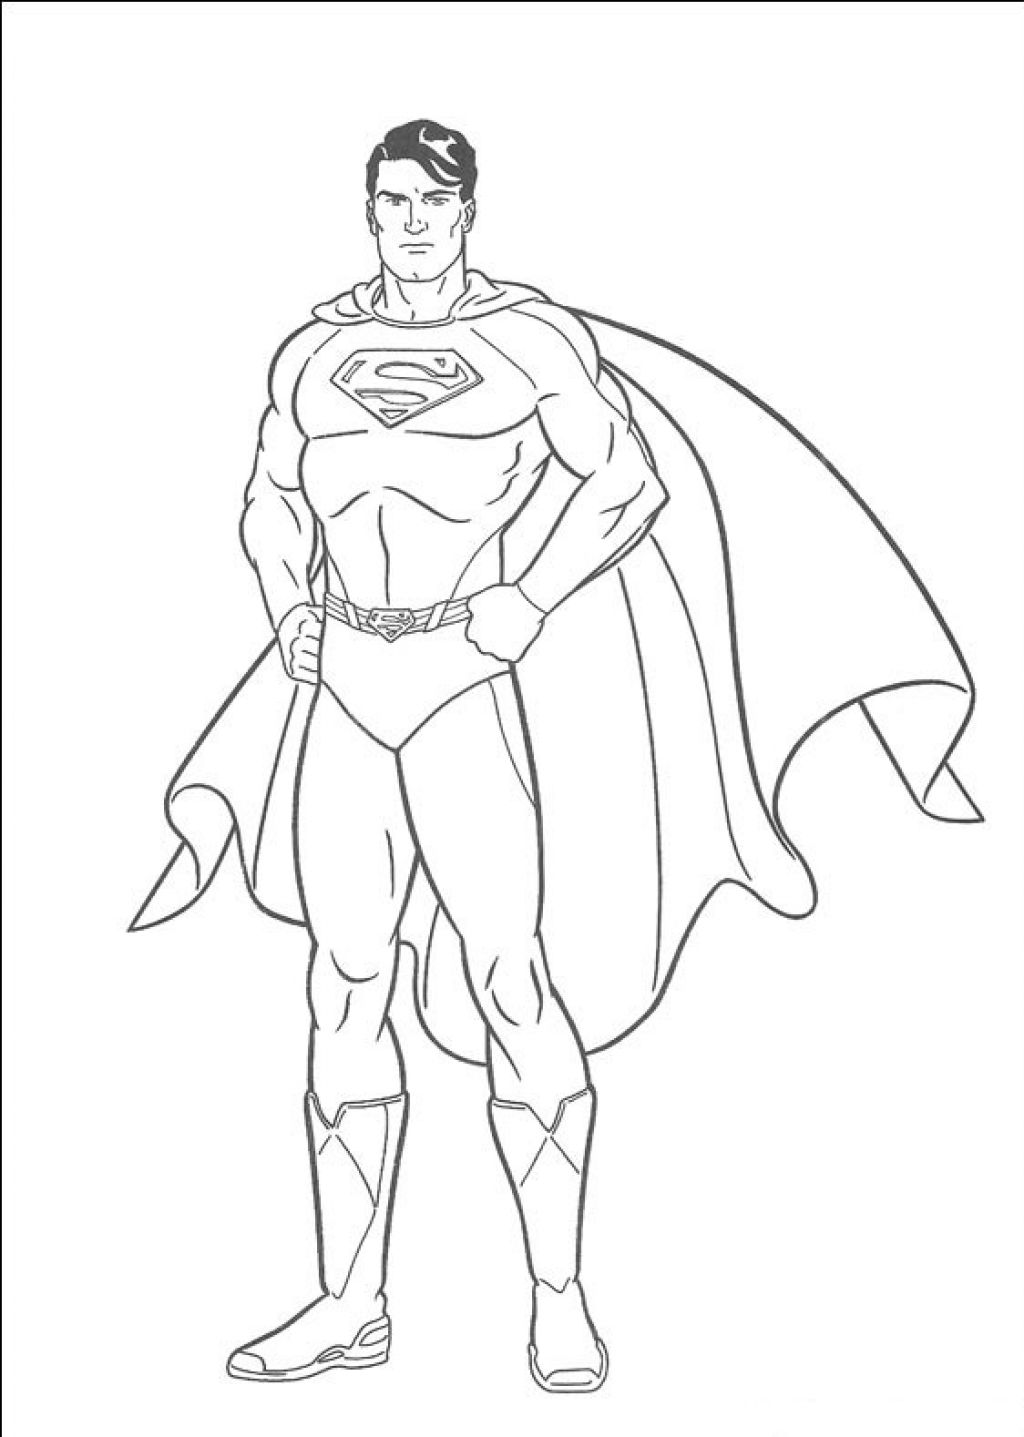 superman cartoon pictures for colouring get this printable superman coloring pages online 28878 pictures for cartoon colouring superman